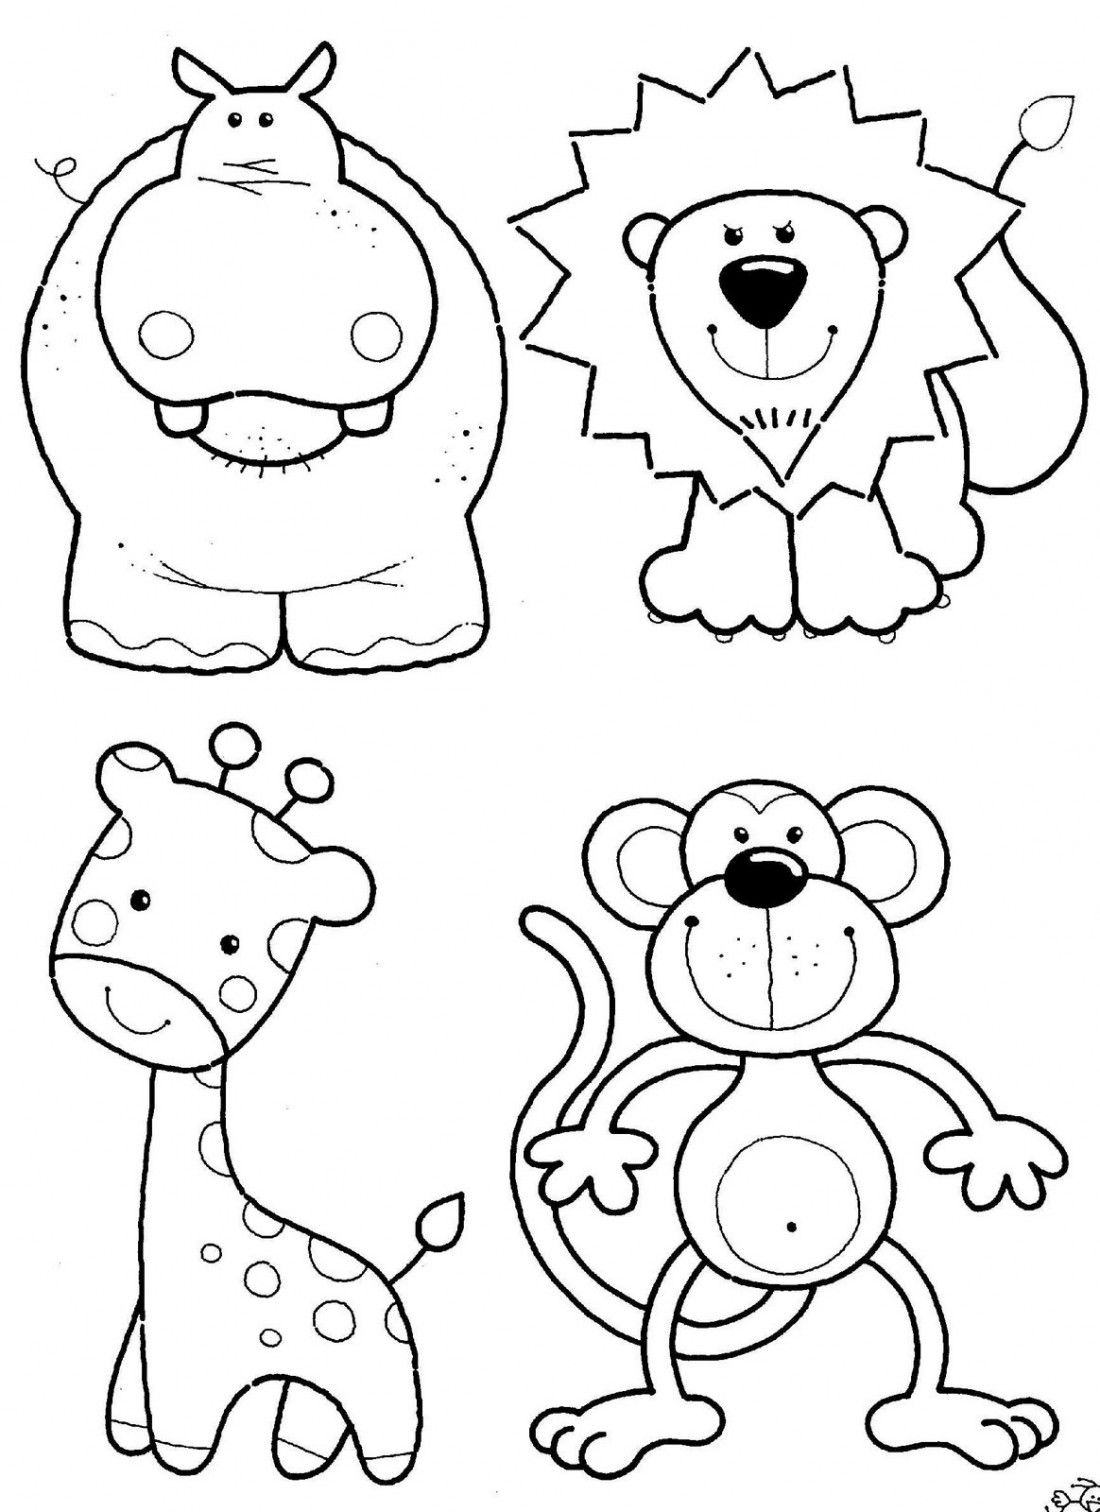 free animal coloring pages kids id color or paint these and use them